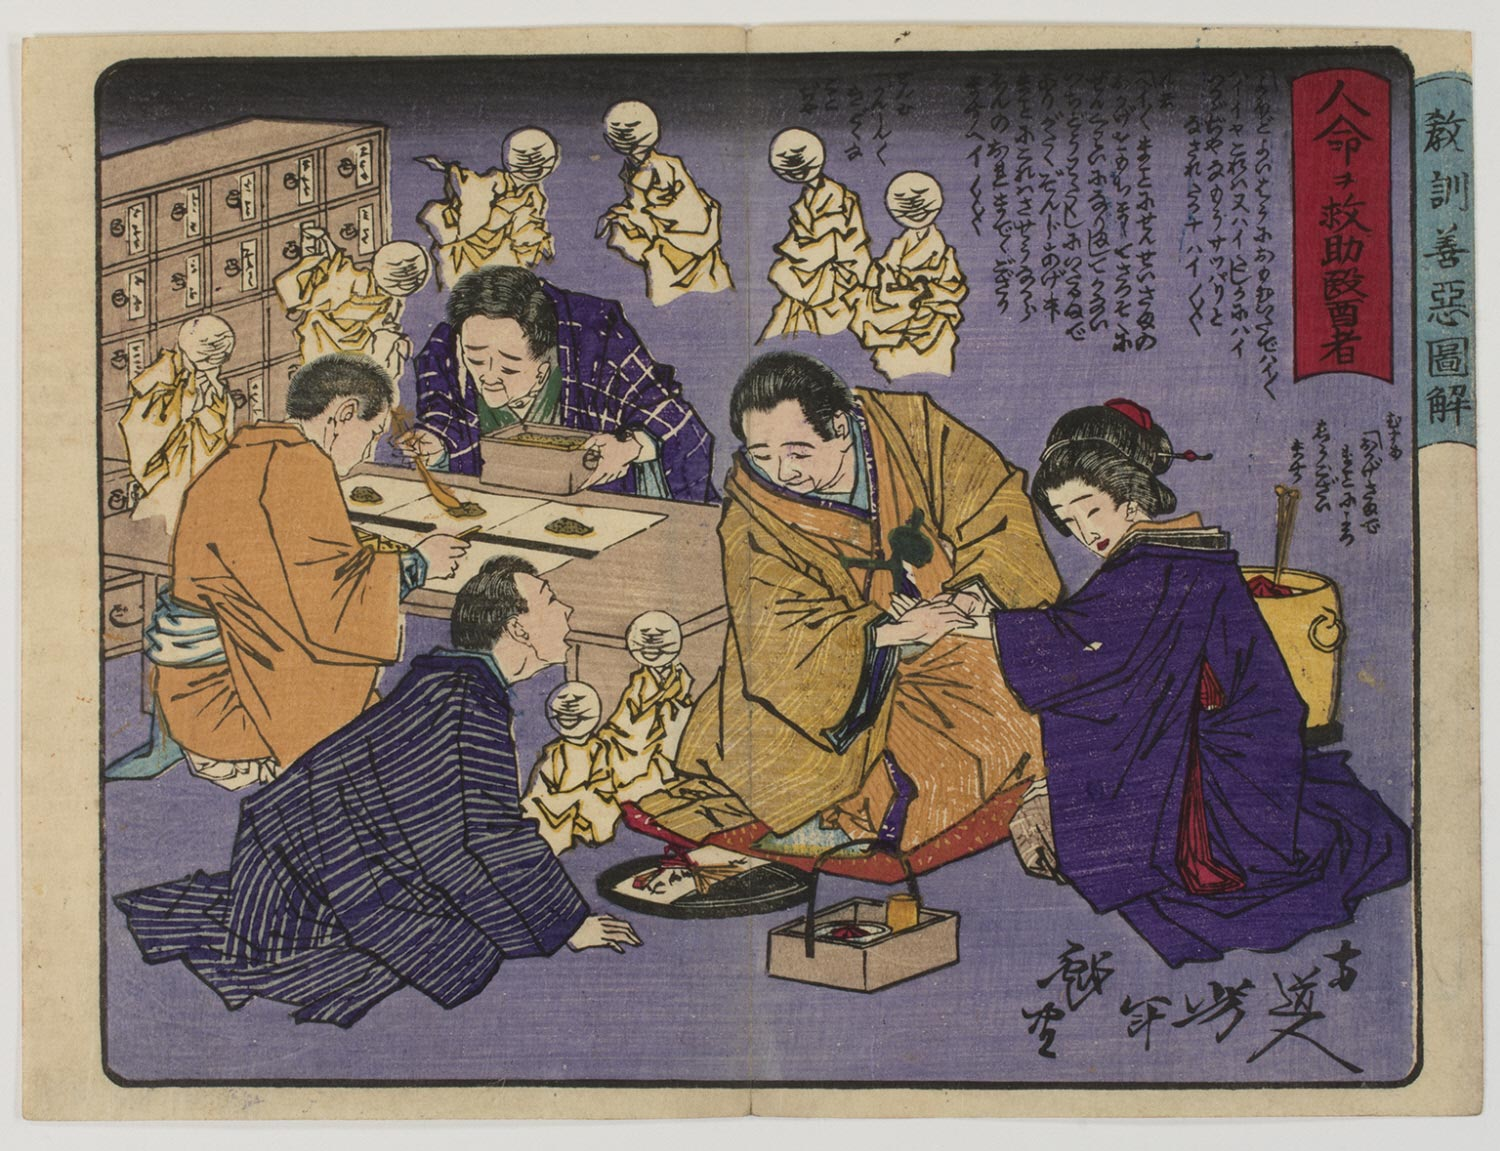 A Doctor who Helps People with their Lives Taking a Woman's Pulse, from the series Moral Lessons through Pictures of Good and Evil (Kyōkun zenaku zukai)